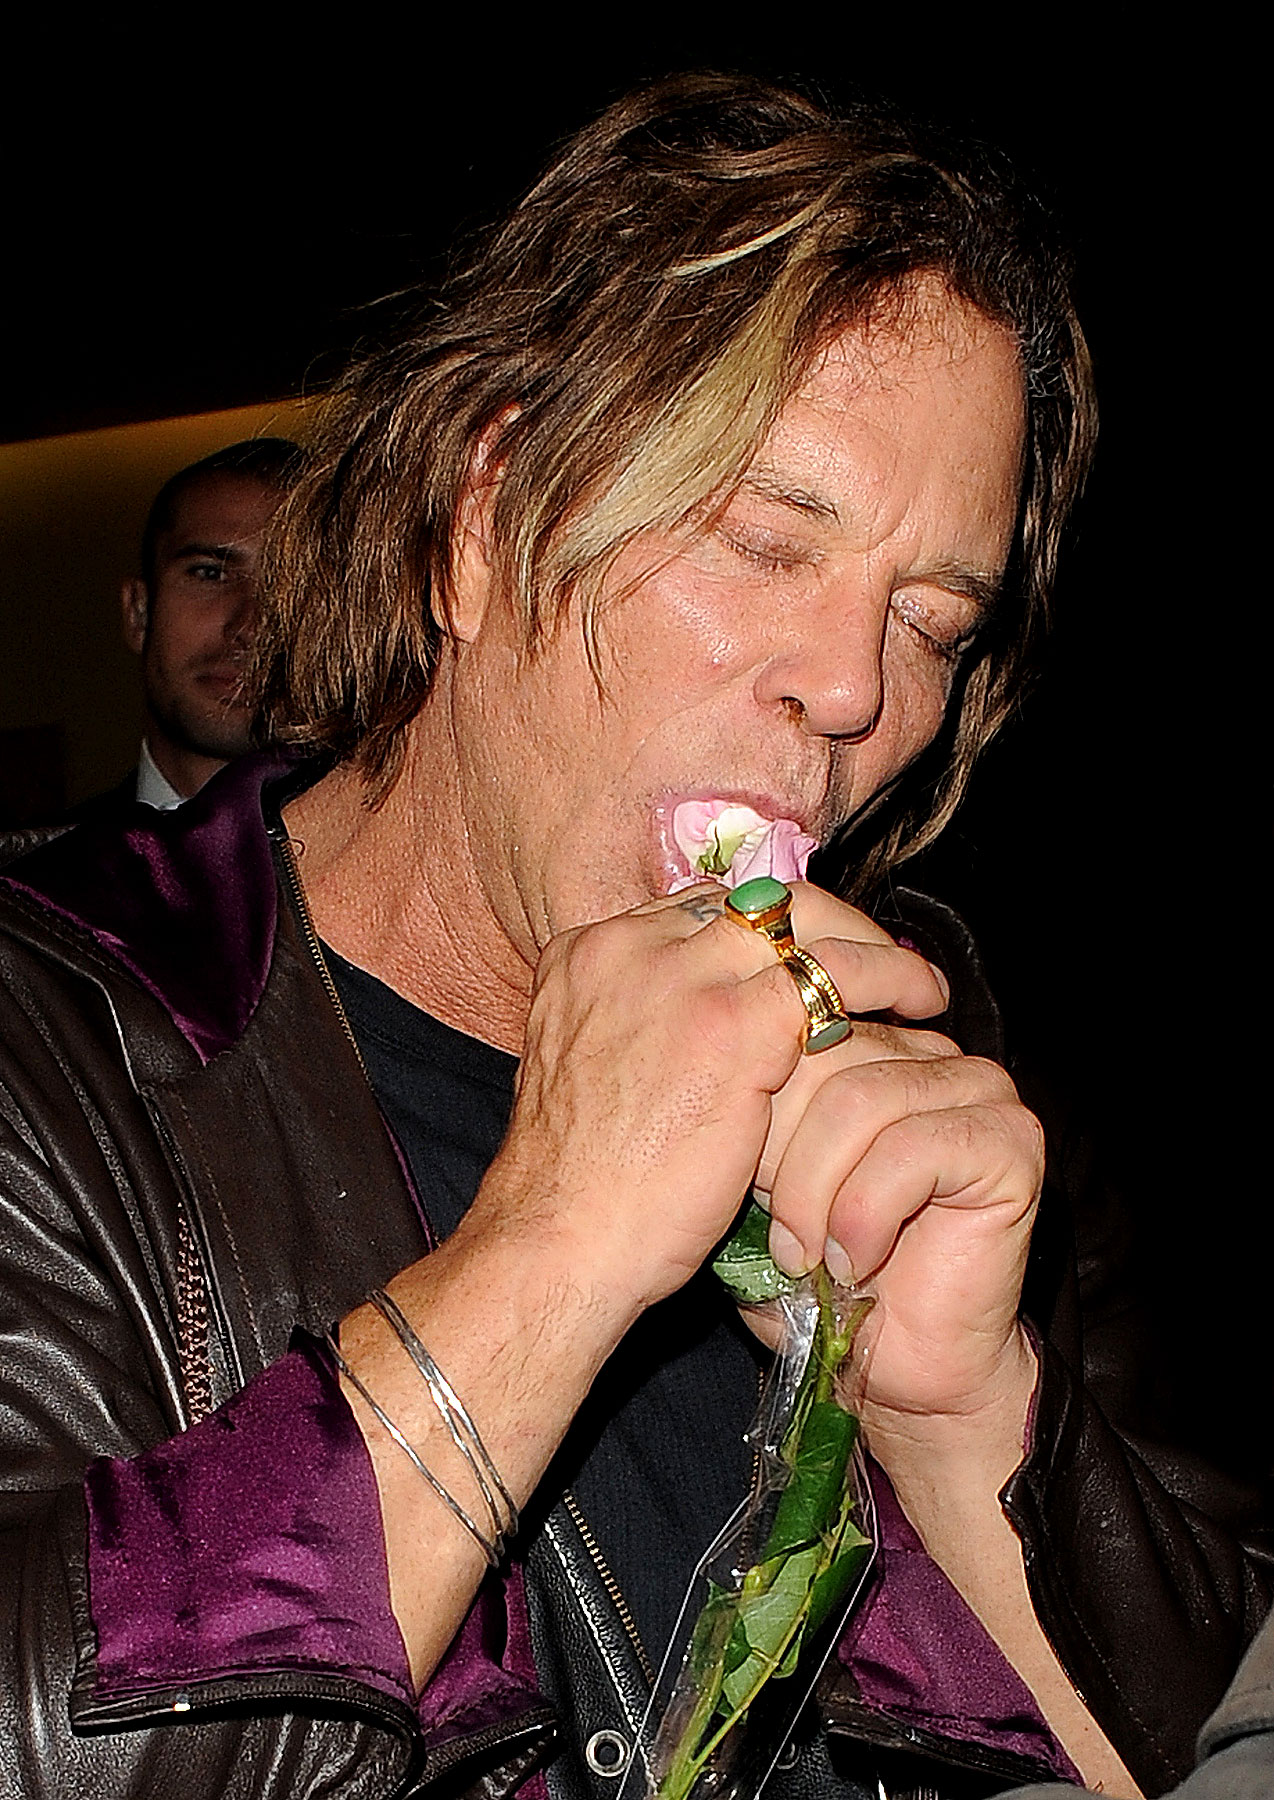 PHOTO GALLERY: Mickey Rourke Eats A Rose